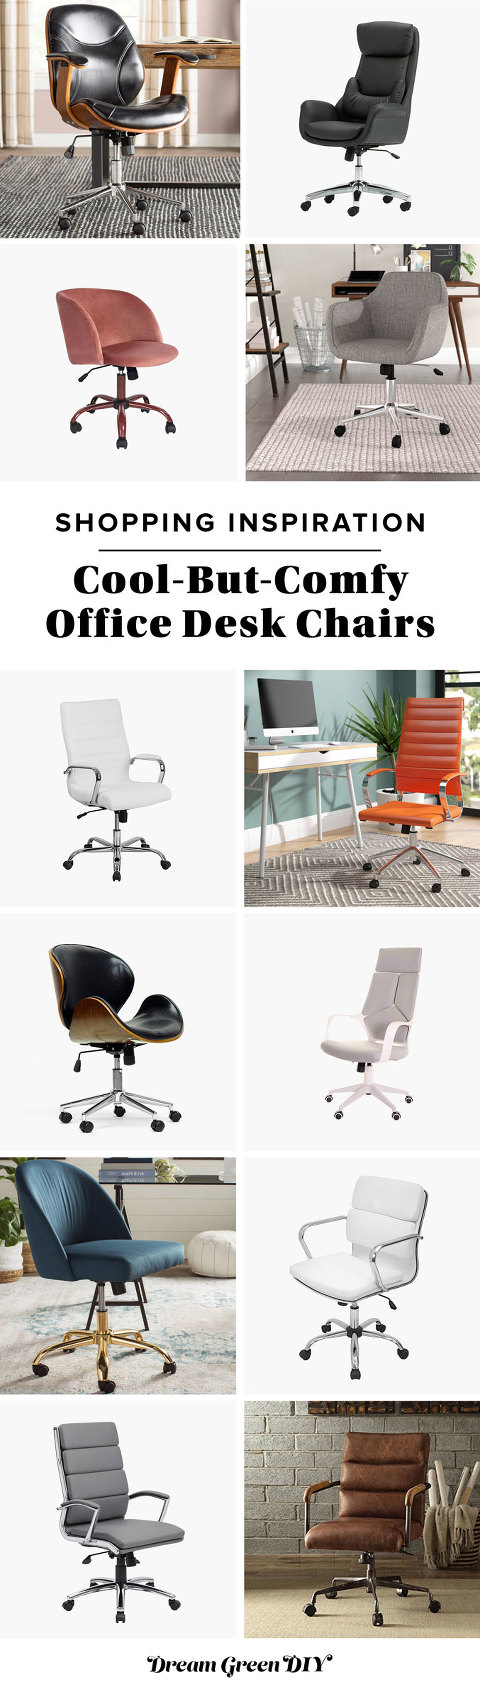 12 Cool-But-Comfy Office Desk Chairs